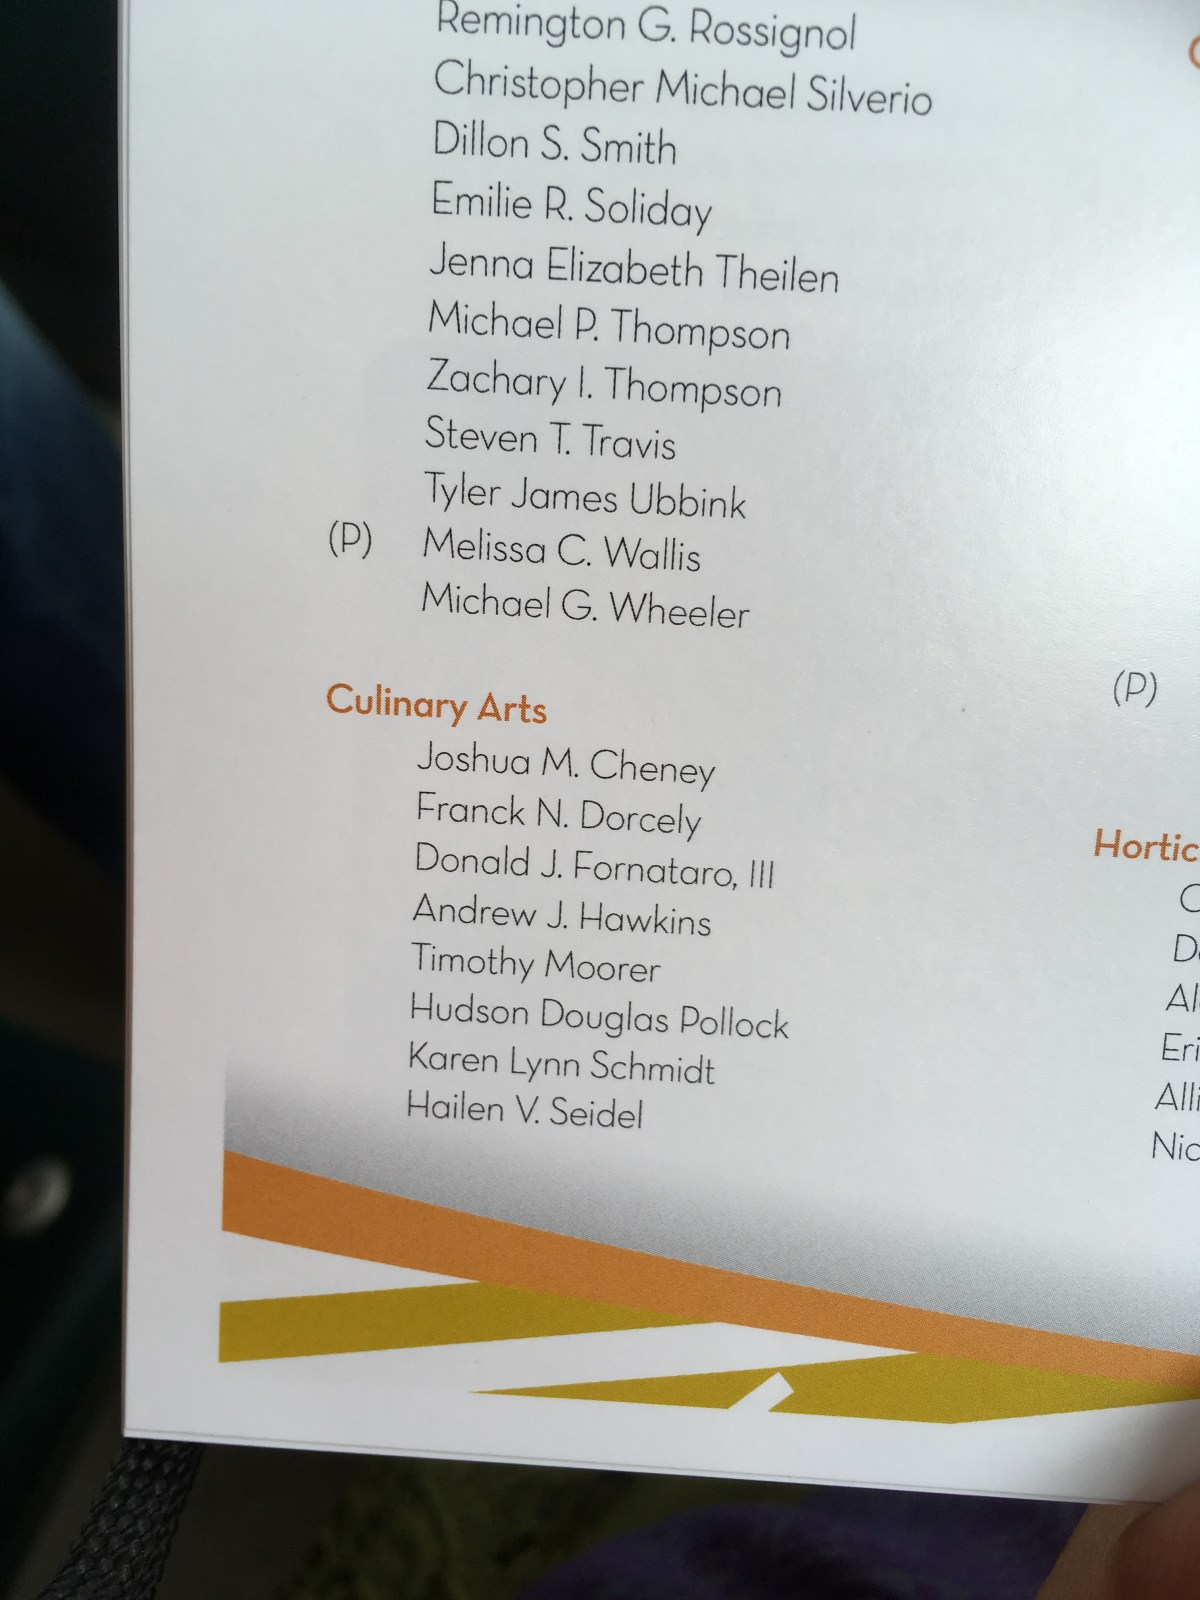 Name on Program